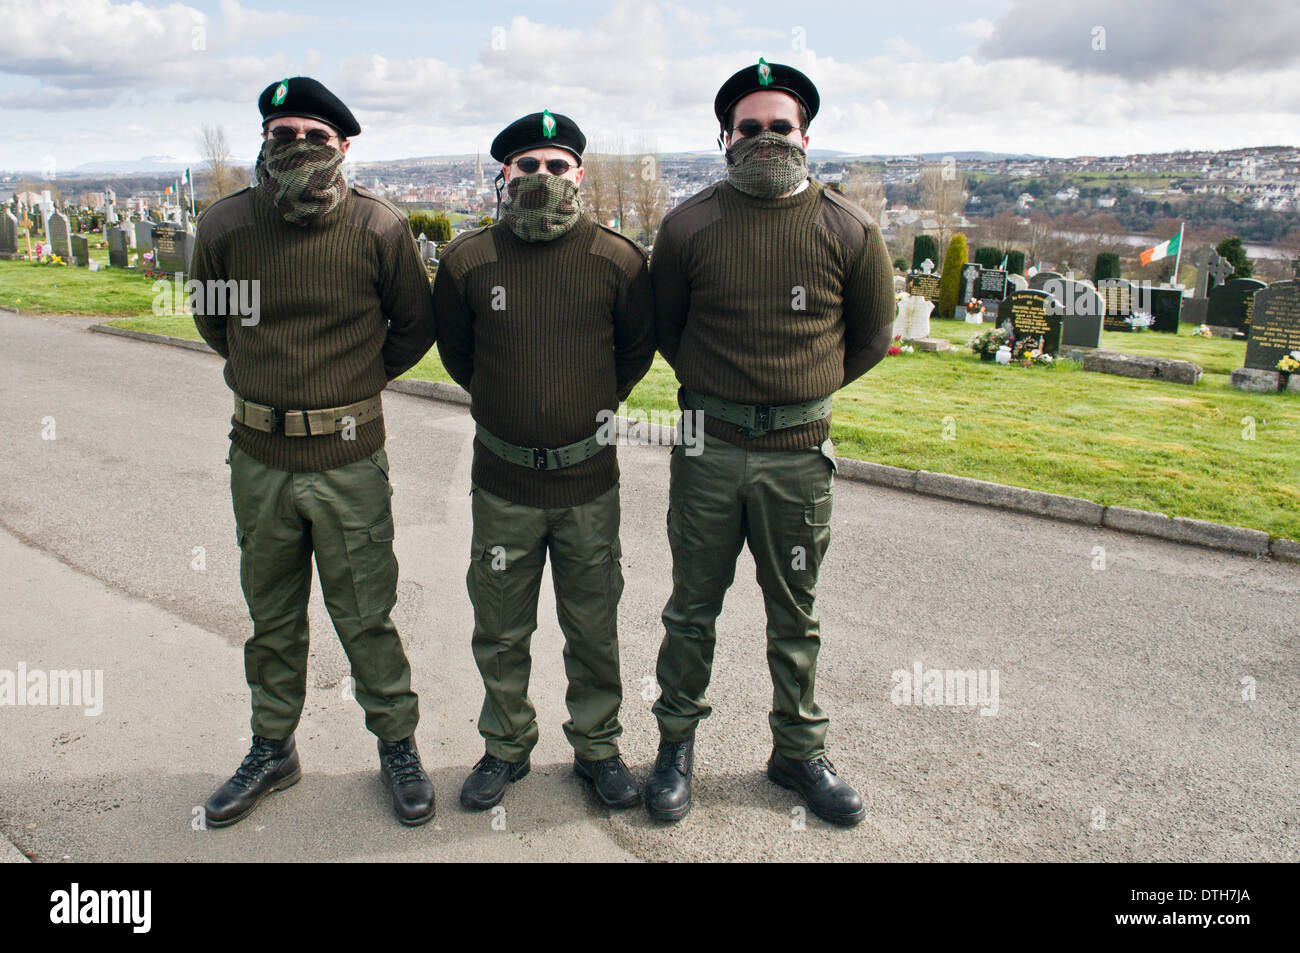 Three men dressed in IRA paramilitary uniforms at Derry Cemetery Stock Photo